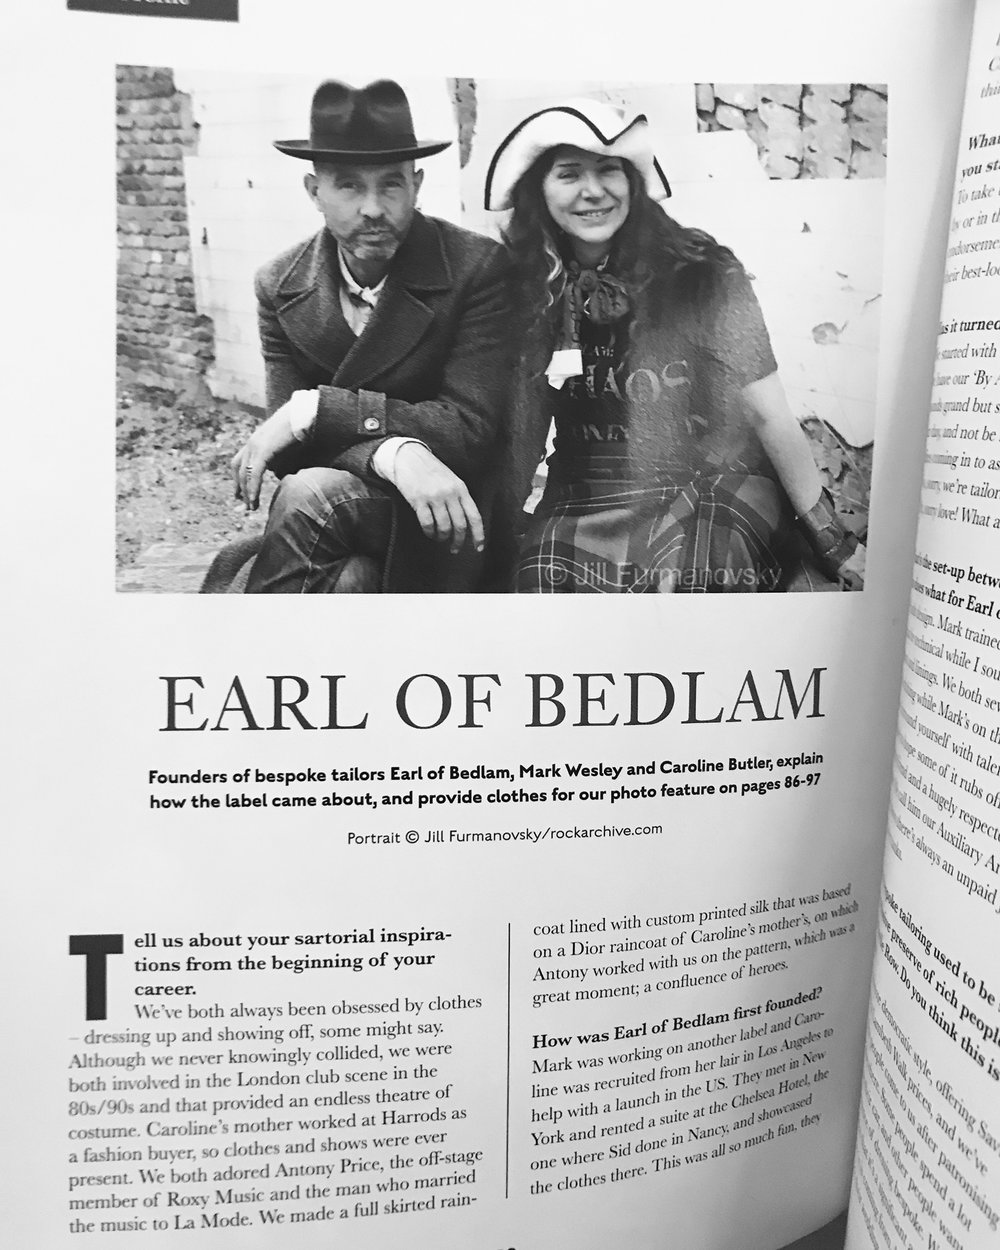 Opening page of the feature on Earl of Bedlam in the Autumn / Winter 2017 issue of The Chap  - order yours here:    http://thechap.co.uk/2017/05/brand-new-chap/